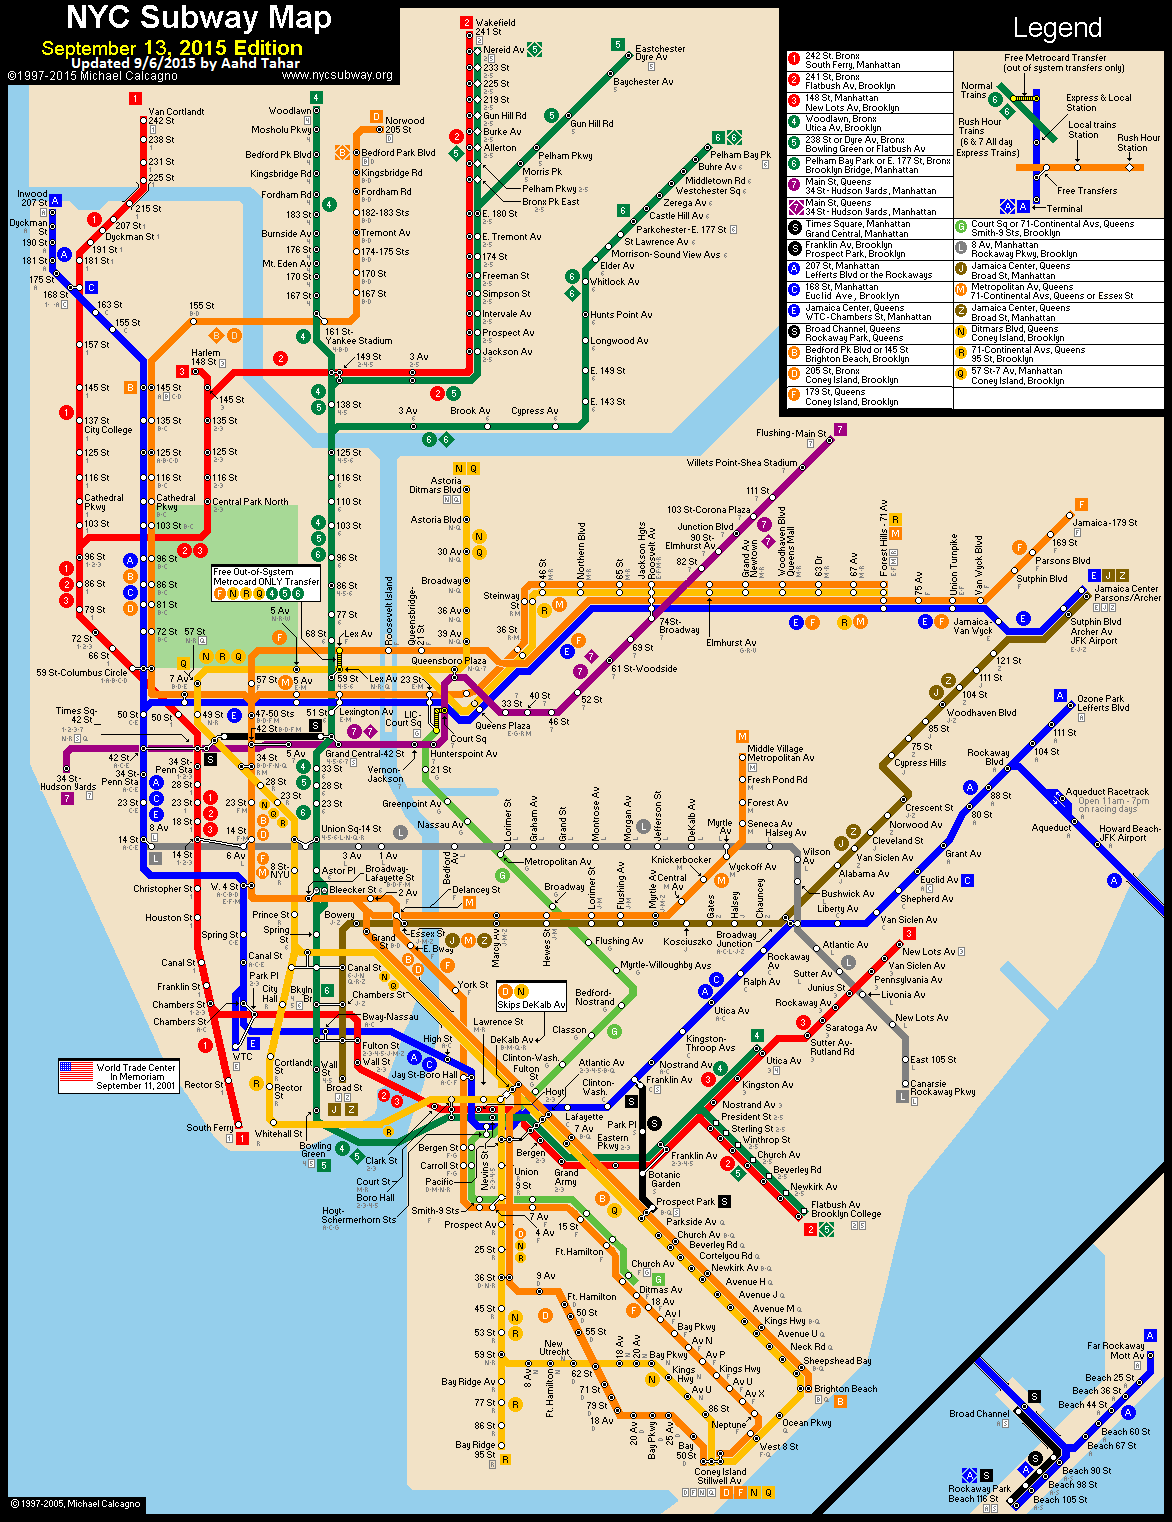 New York Manhattan Metro Map calcagno-2015-09-13.png /> manhattan metro map